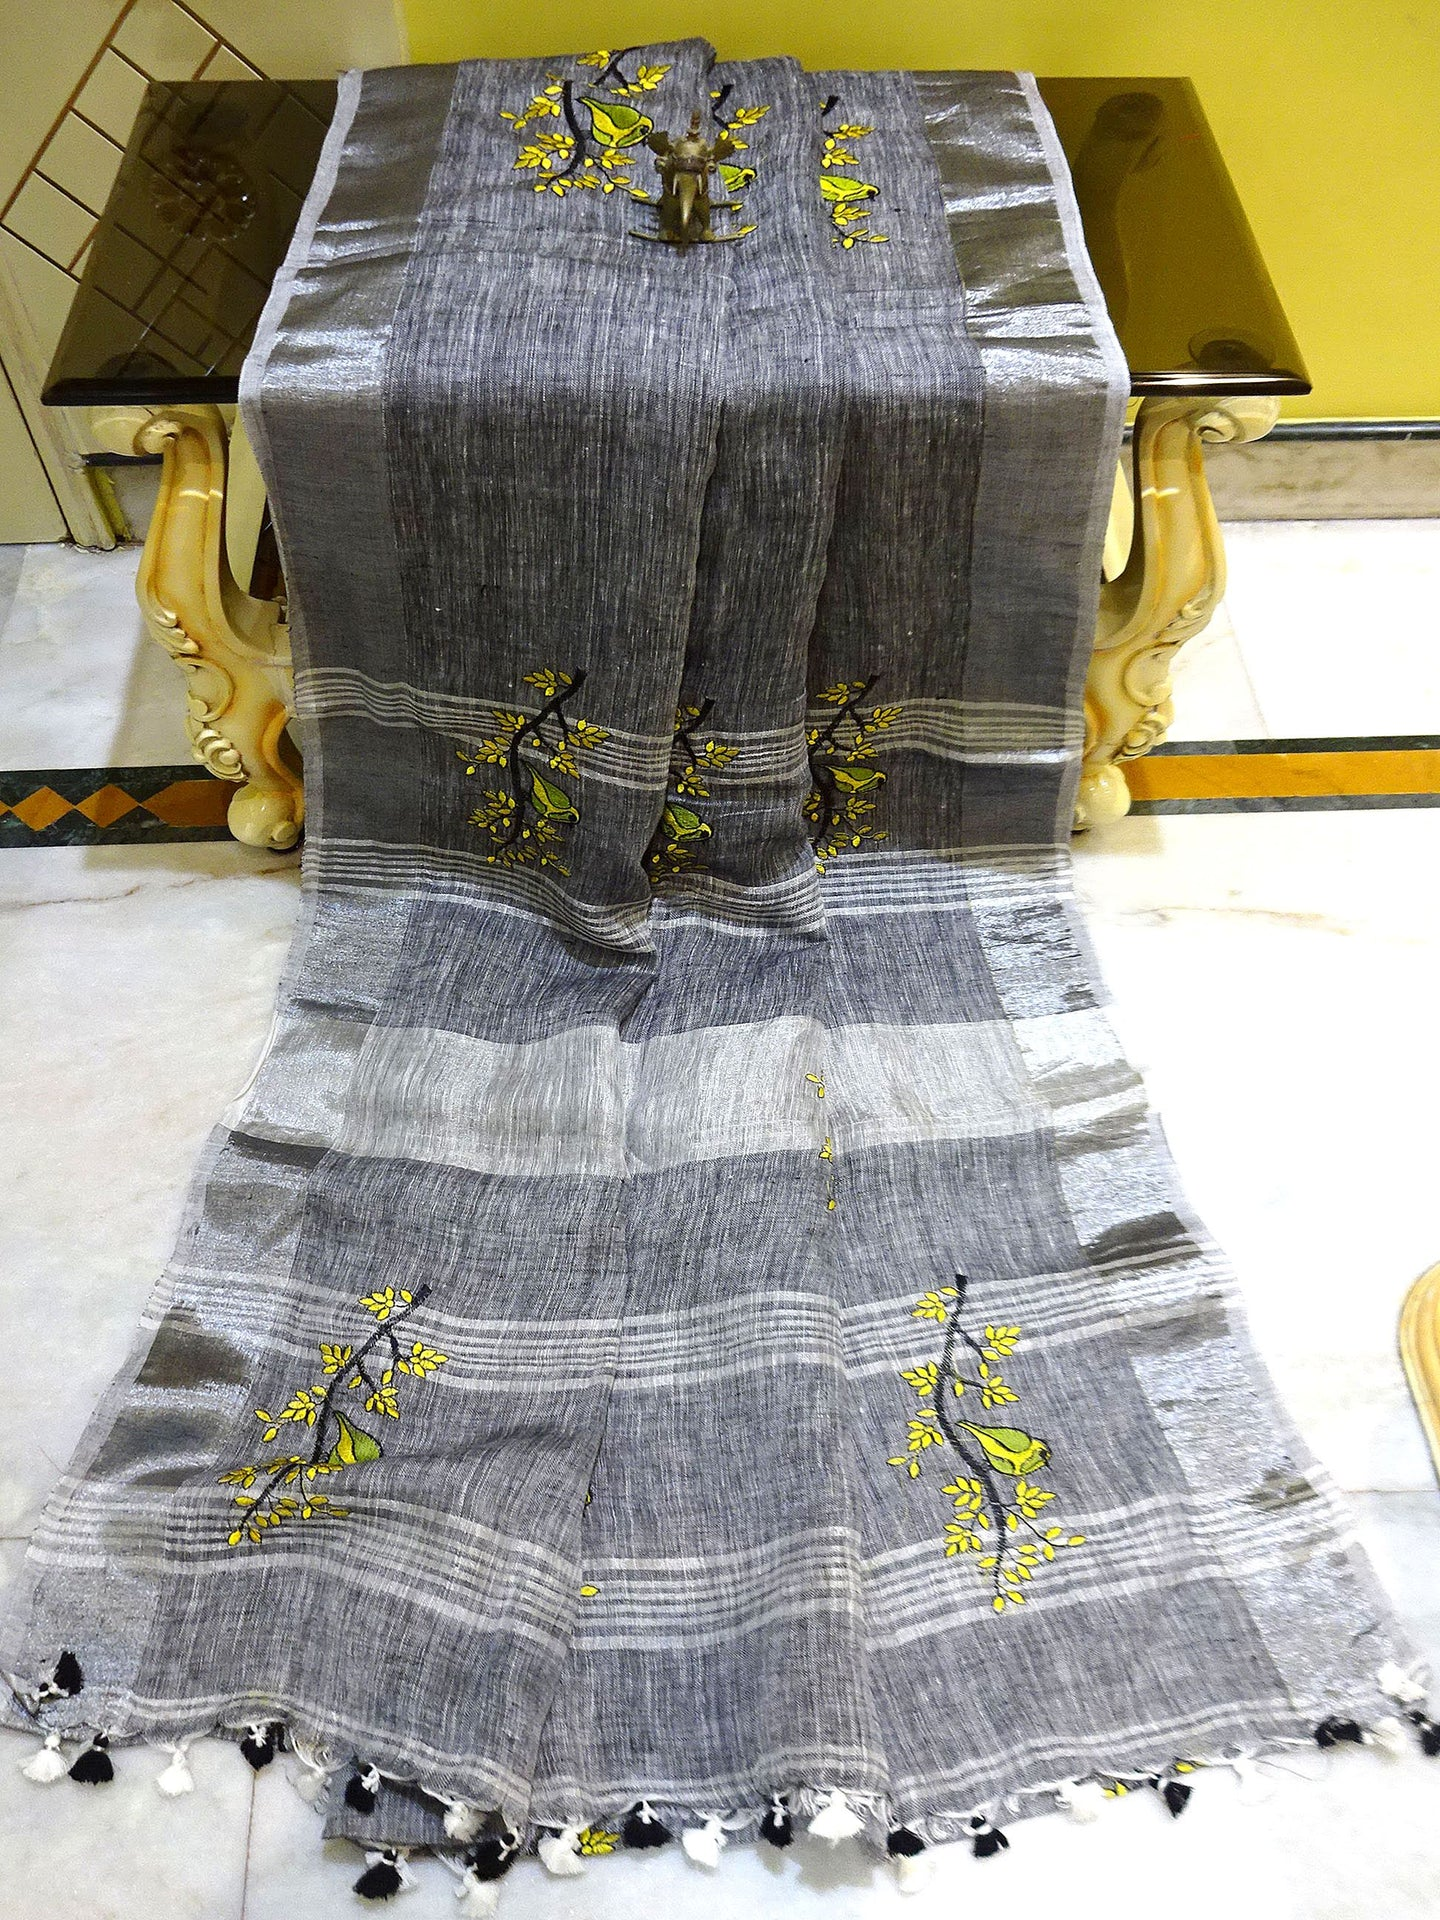 Pure Handloom Linen Embroidery Saree in Grey and Silver from Bengal Looms India